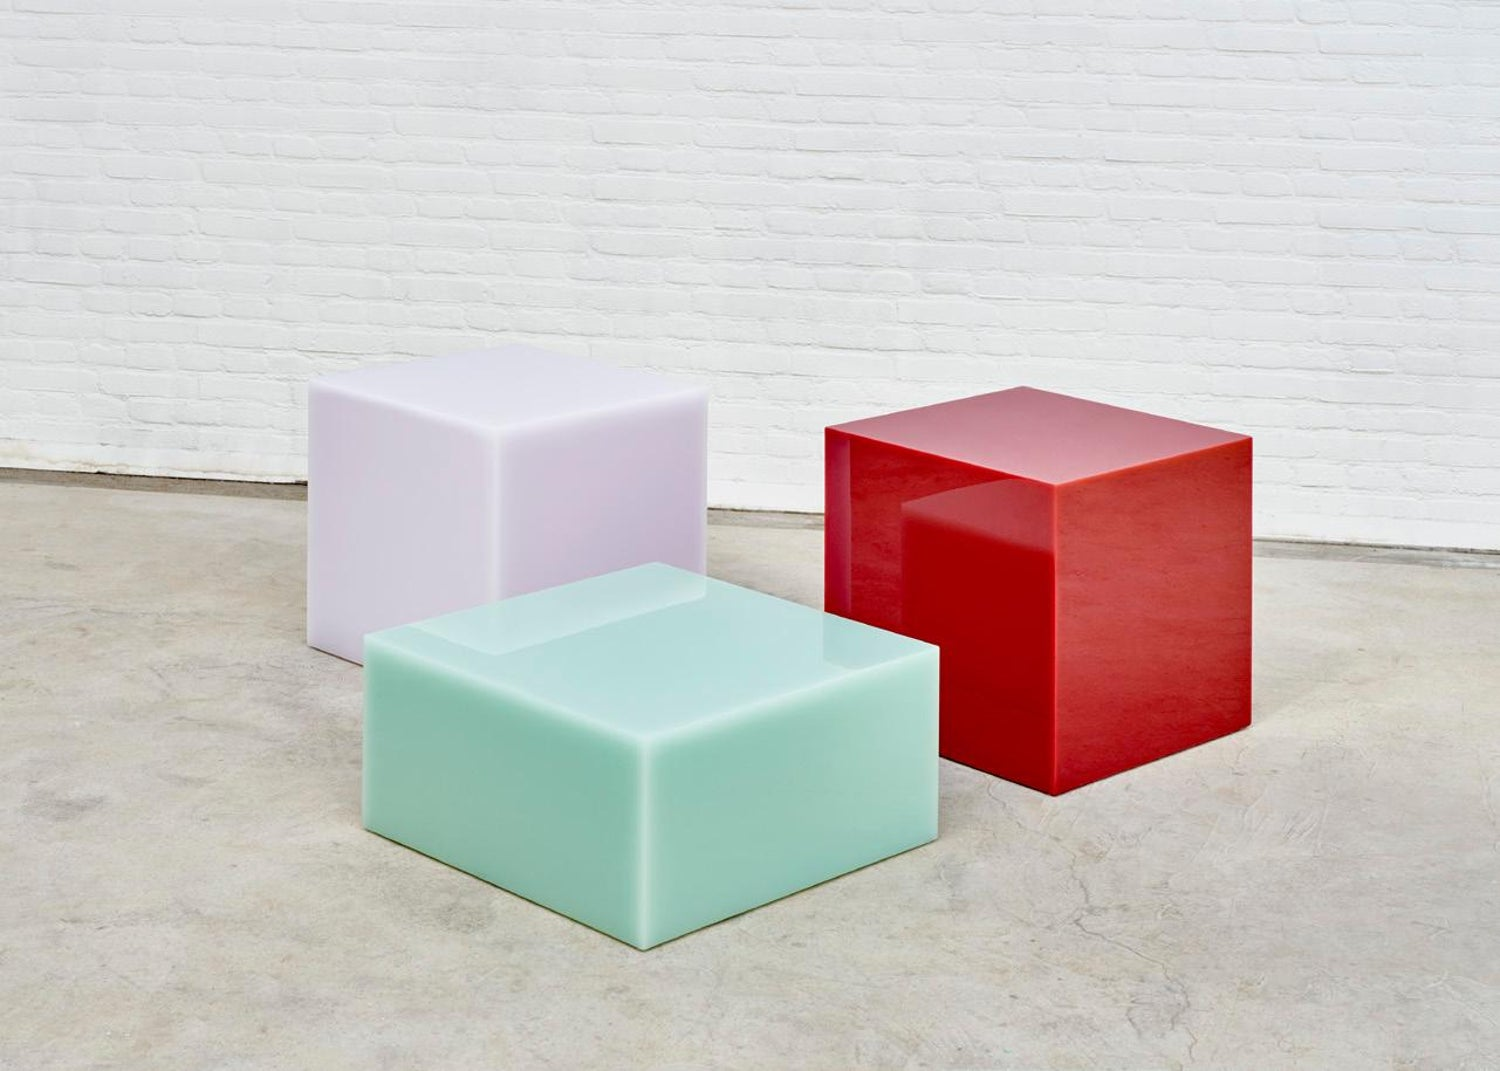 Memphis Design Furniture - Candy Cube by Sabine Marcellis